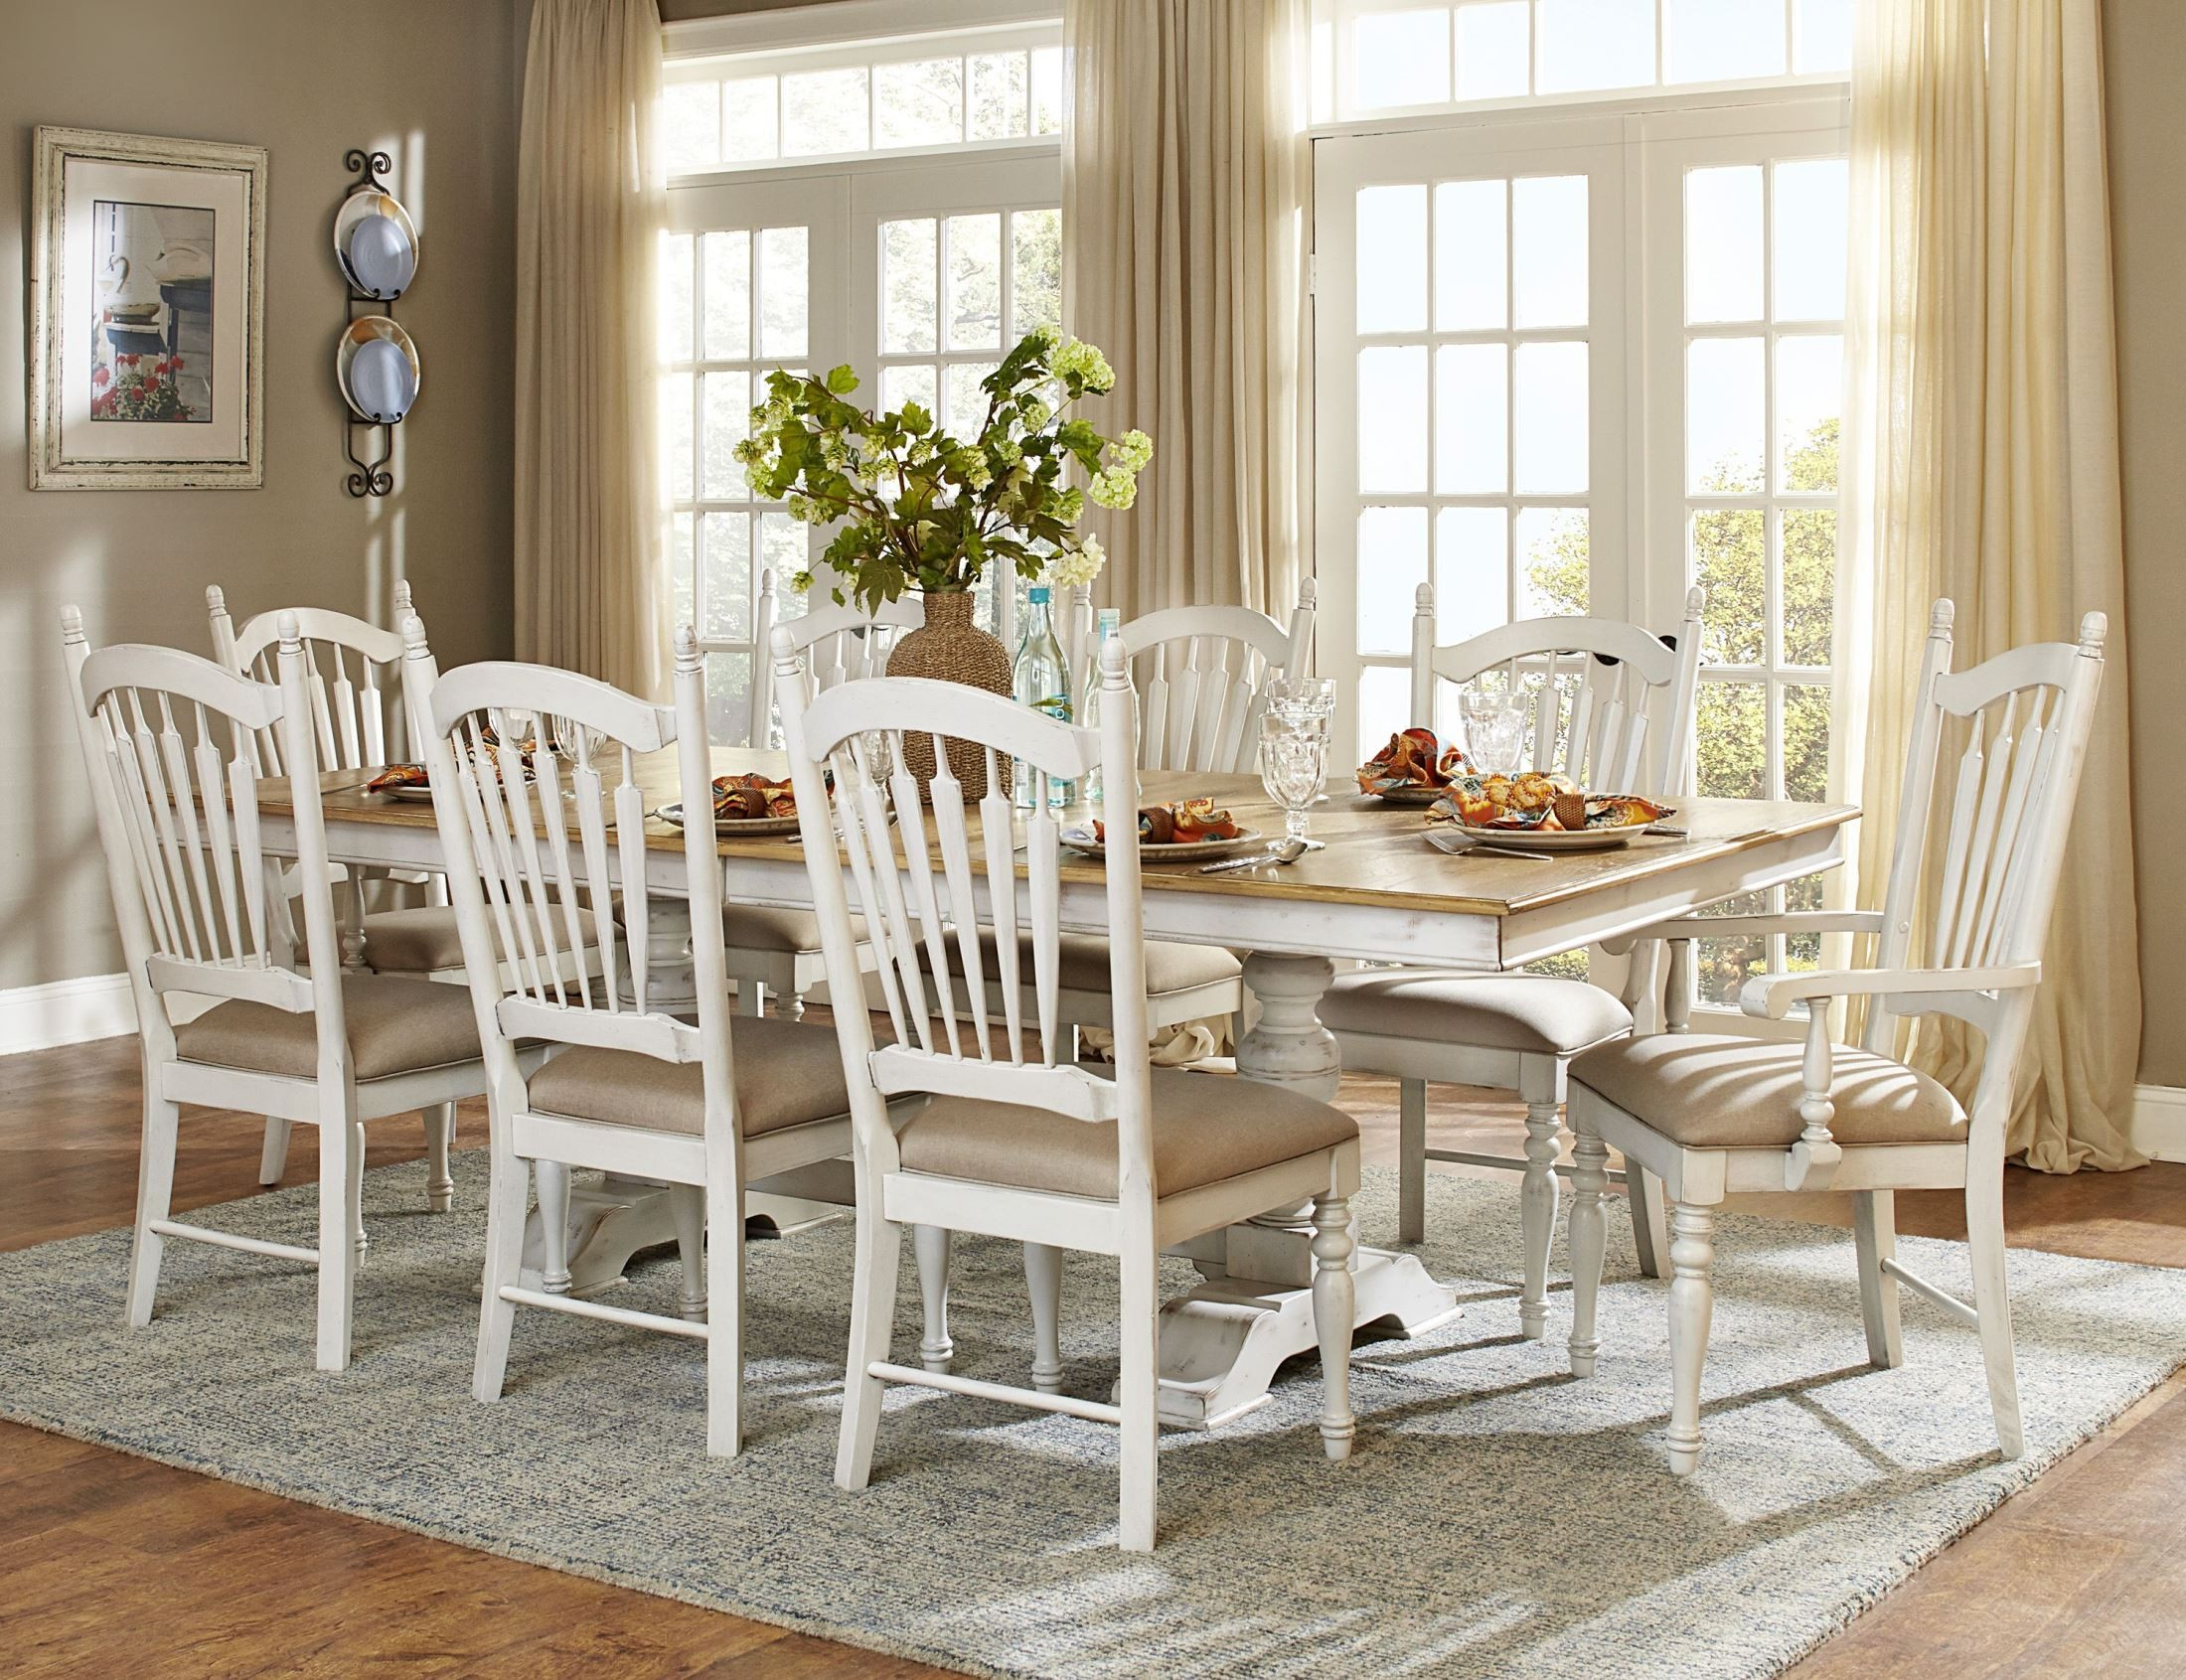 Superb Hollyhock Distressed White Dining Room Set. 937681. 776777